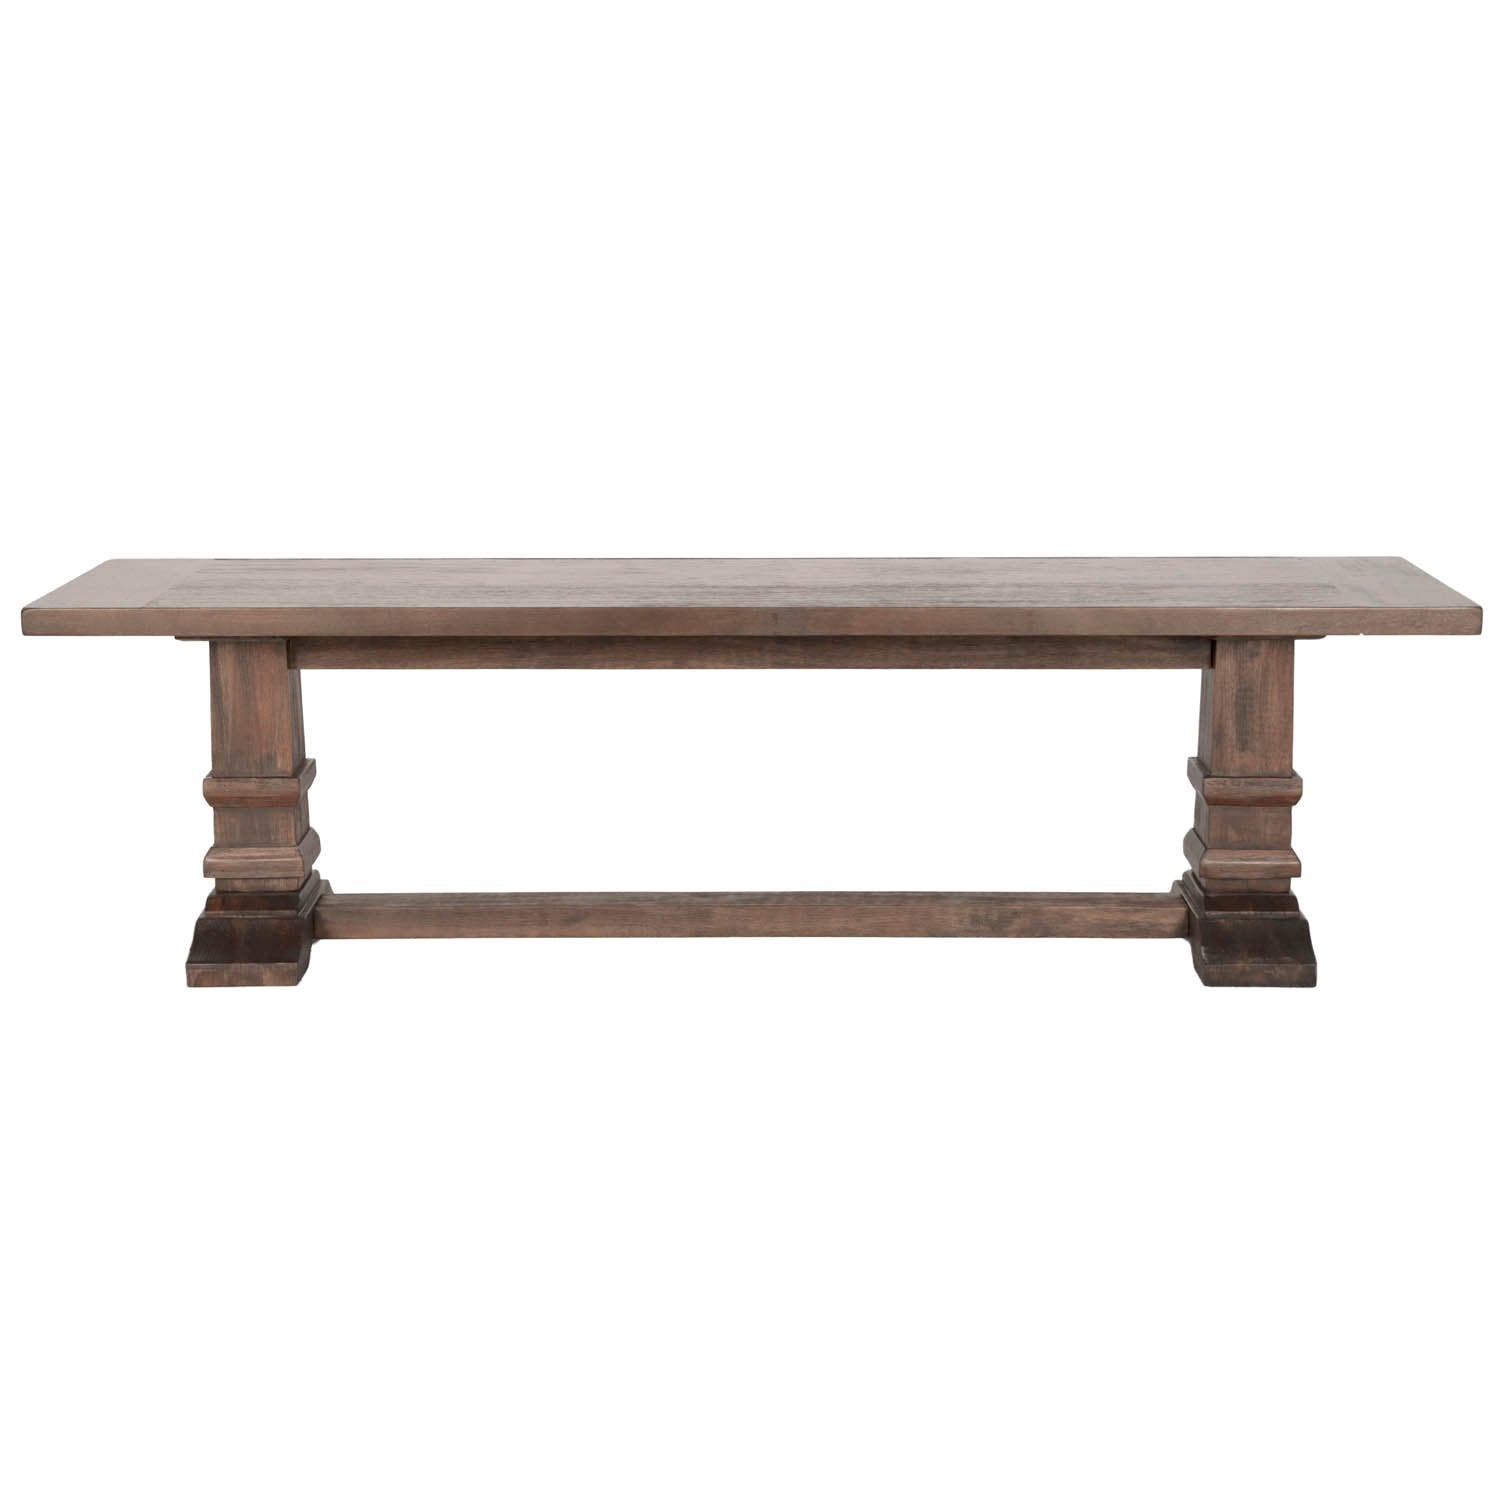 Hudson Large Dining Bench in Rustic Java